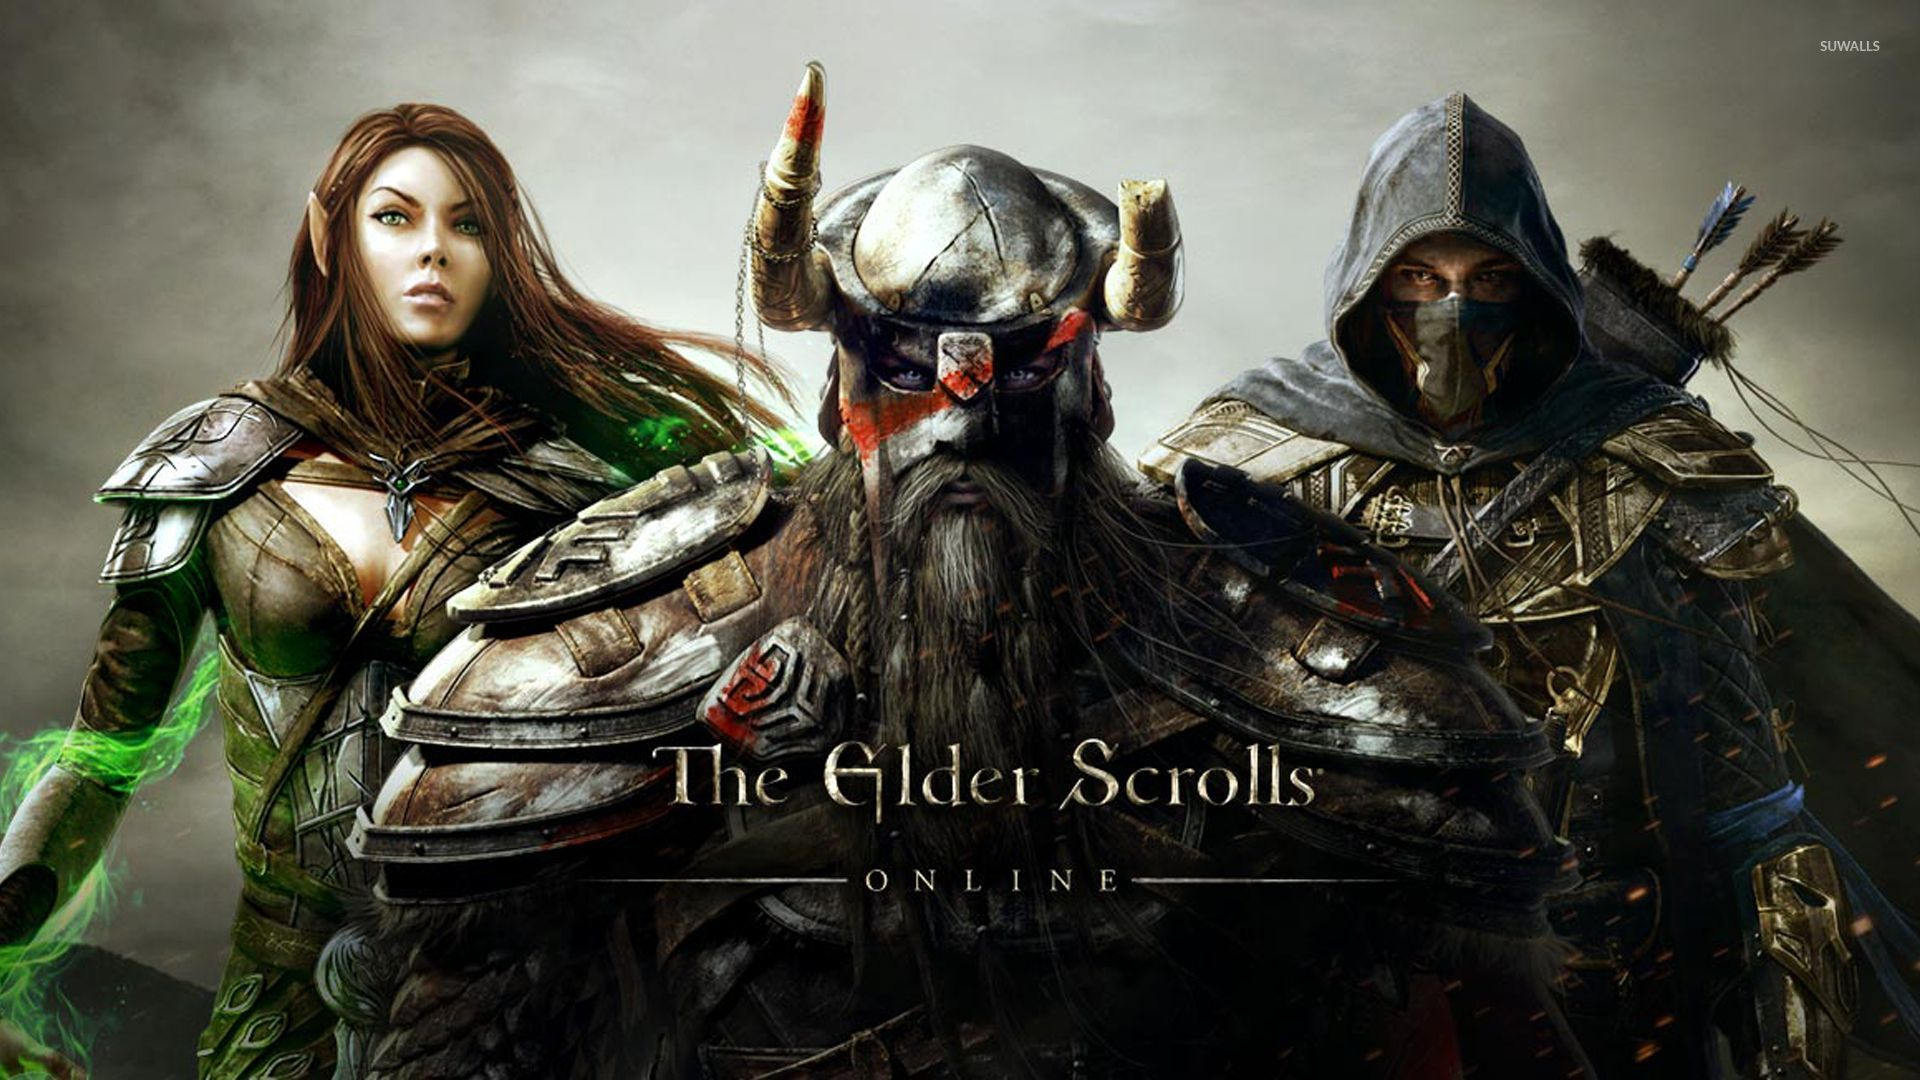 The Elder Scrolls 6 Release Date, Trailer, Gameplay, Features, Rumors, News, Characters and Updates